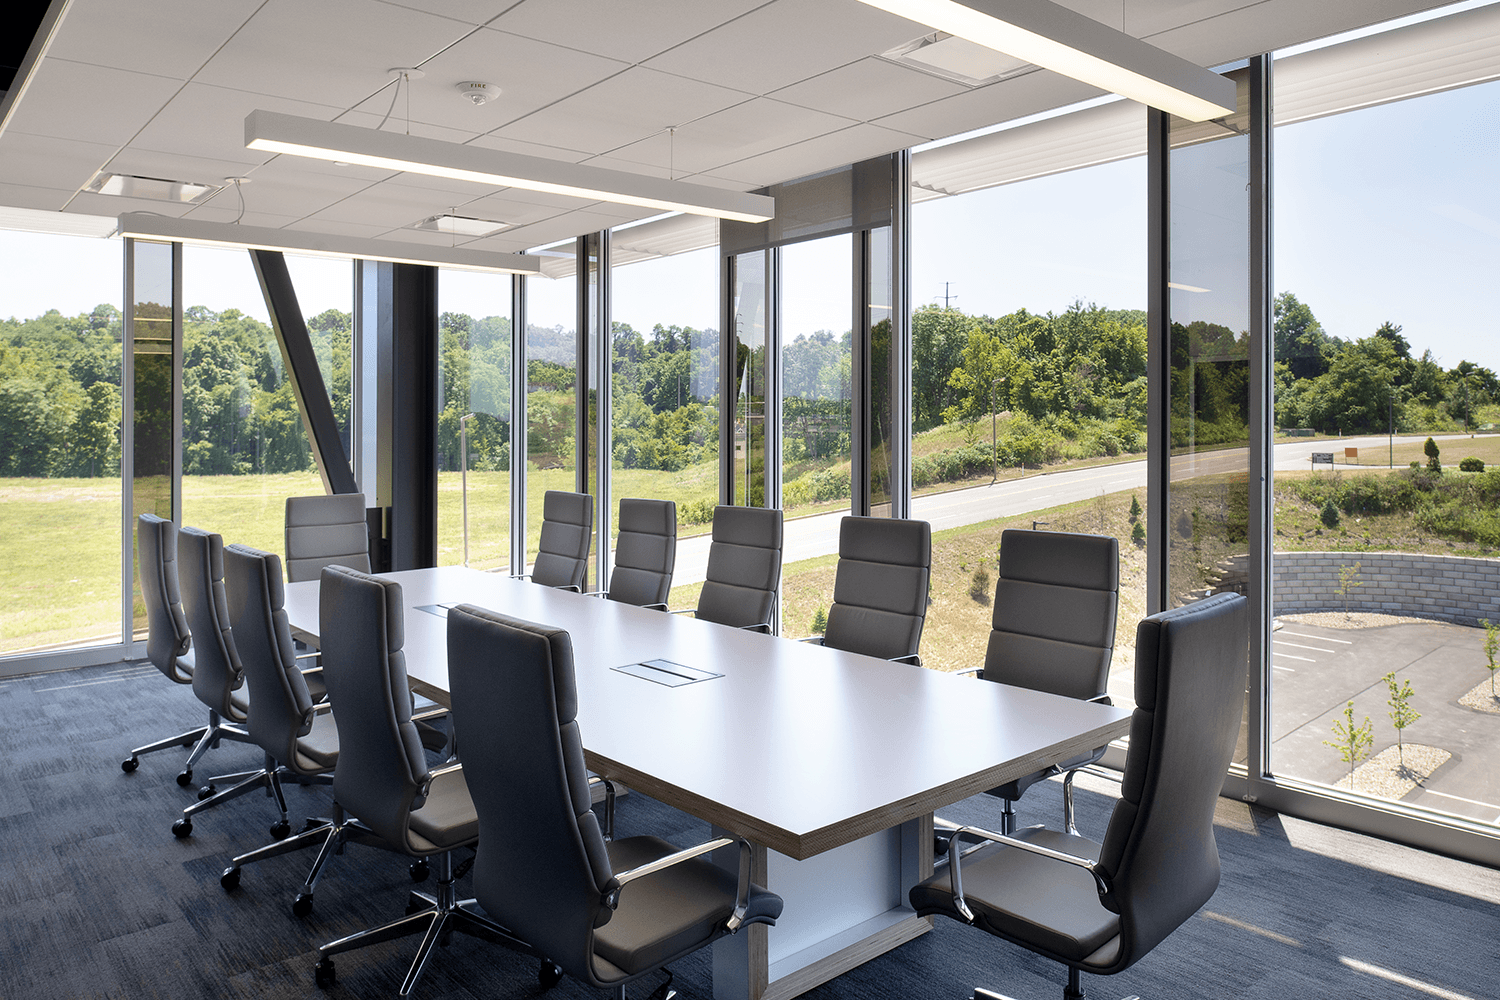 conference room with a table and chairs with large floor-to-ceiling windows